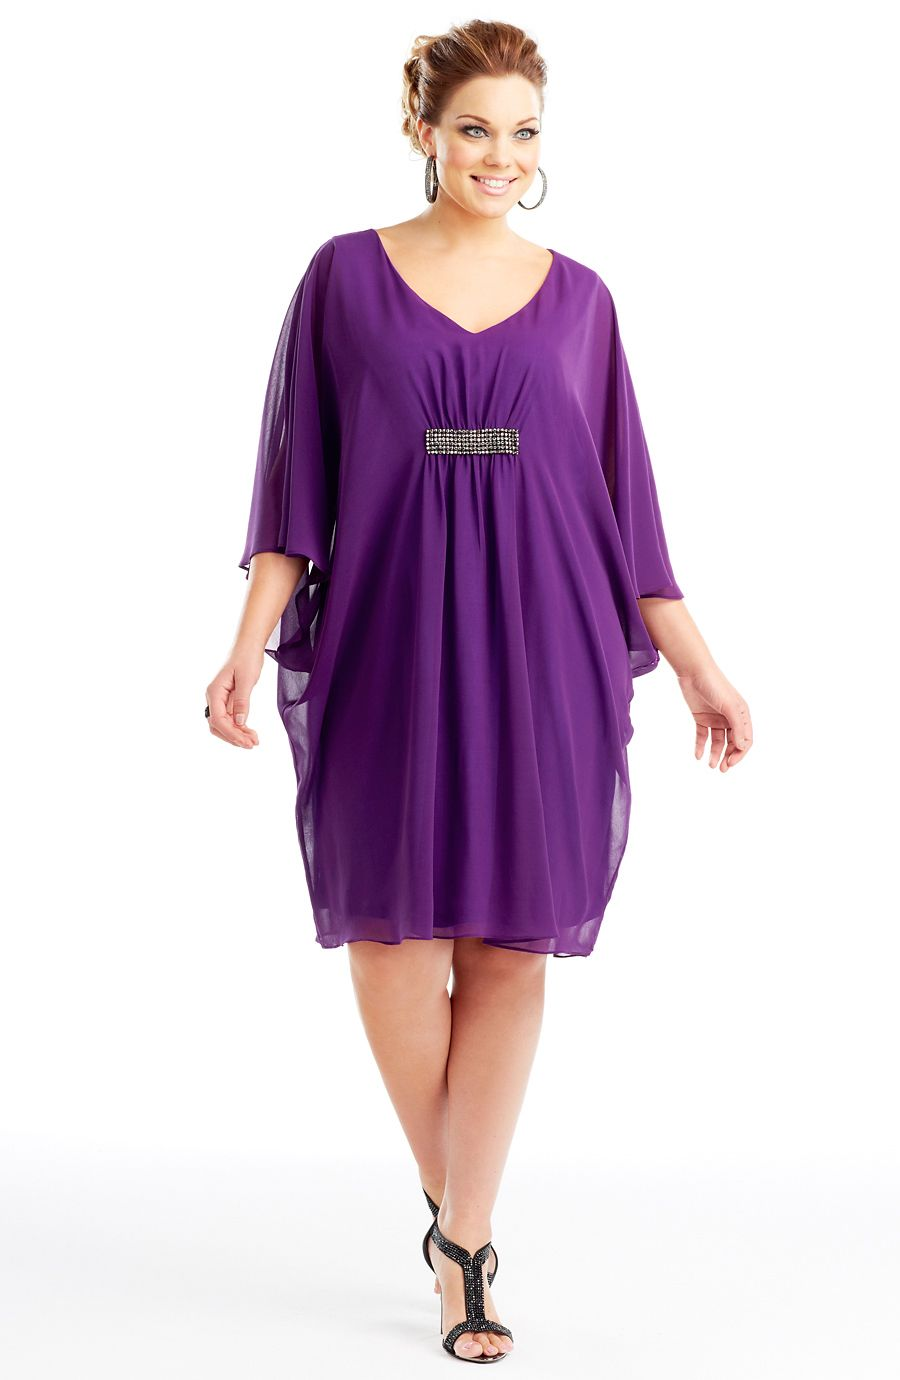 Metallic detail dress/Sweet Purple Style No: ED5120 Imitation silk ...